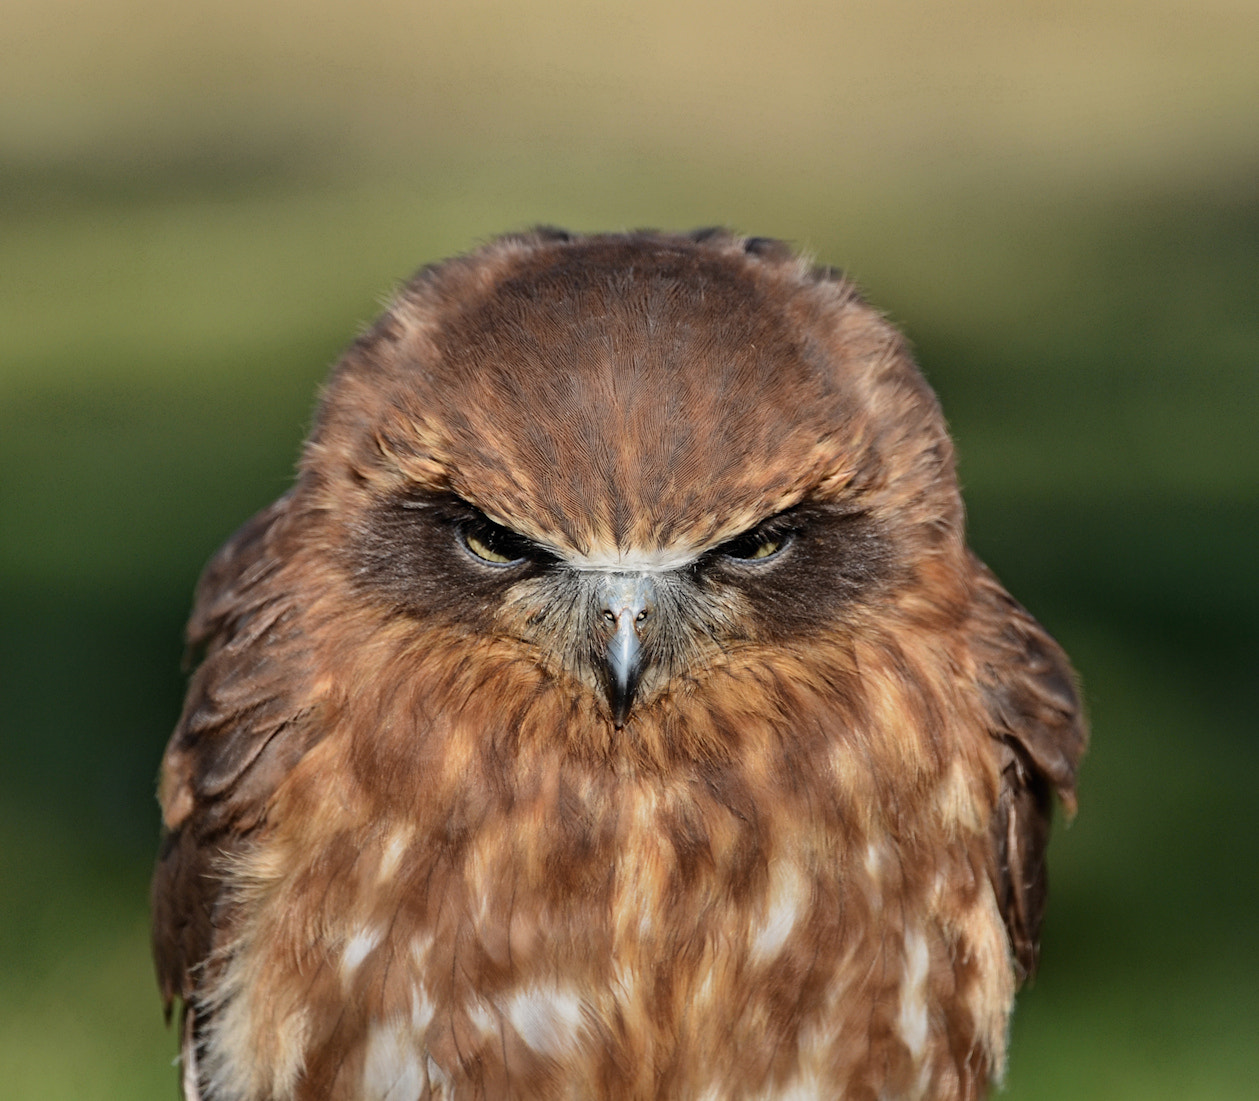 Photograph Angry bird. by Frank de Ridder on 500px